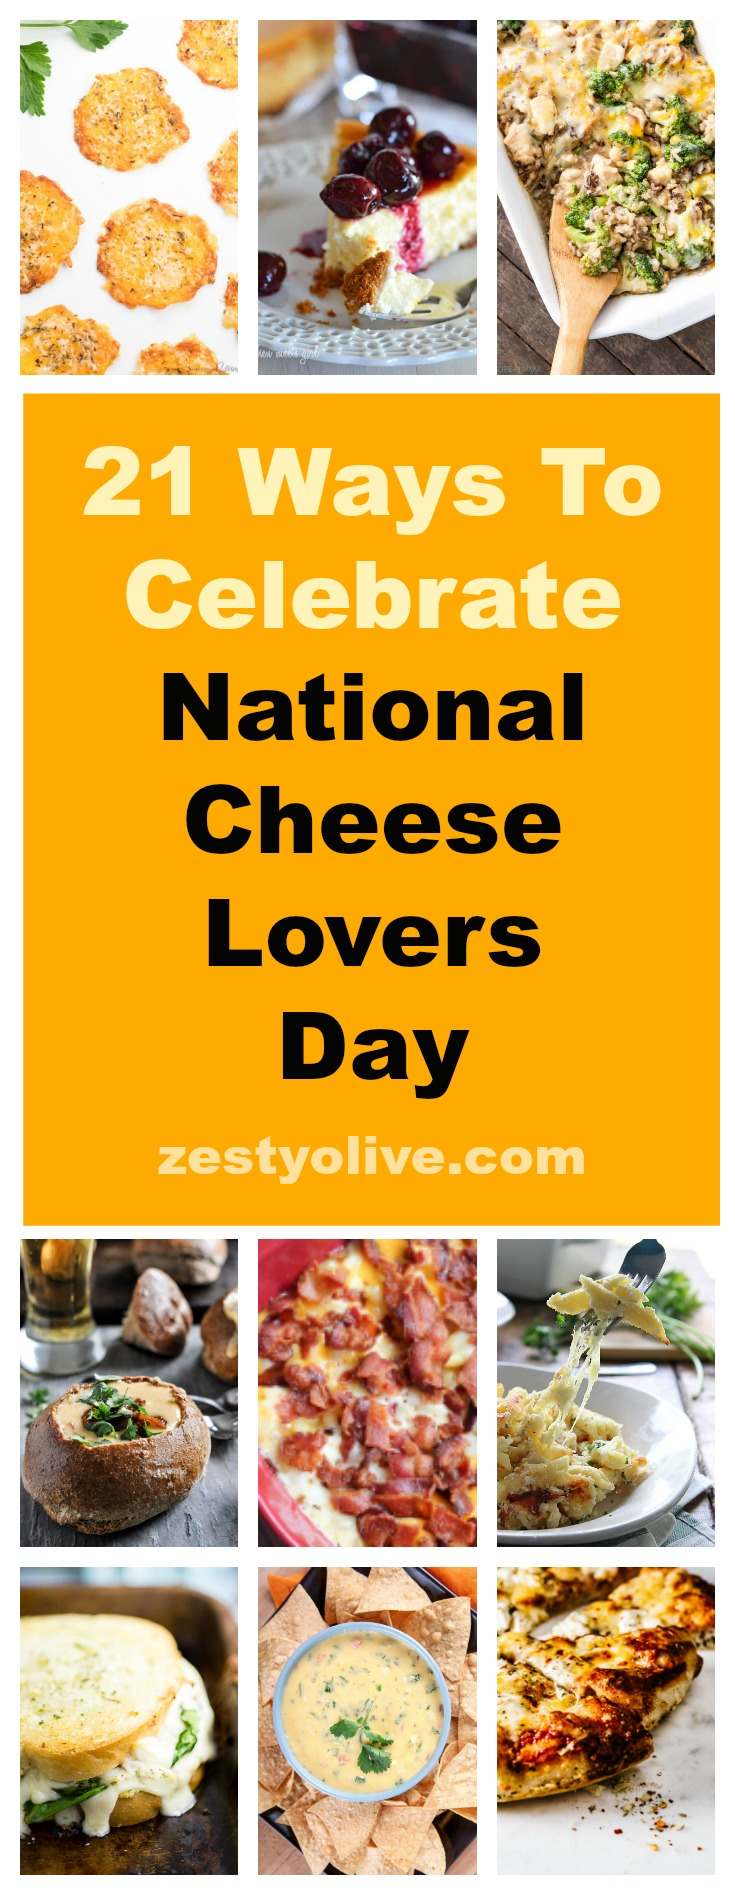 Here are 21 Ways To Celebrate National Cheese Lovers Day with recipes guaranteed to please the most ardent of cheese lovers.